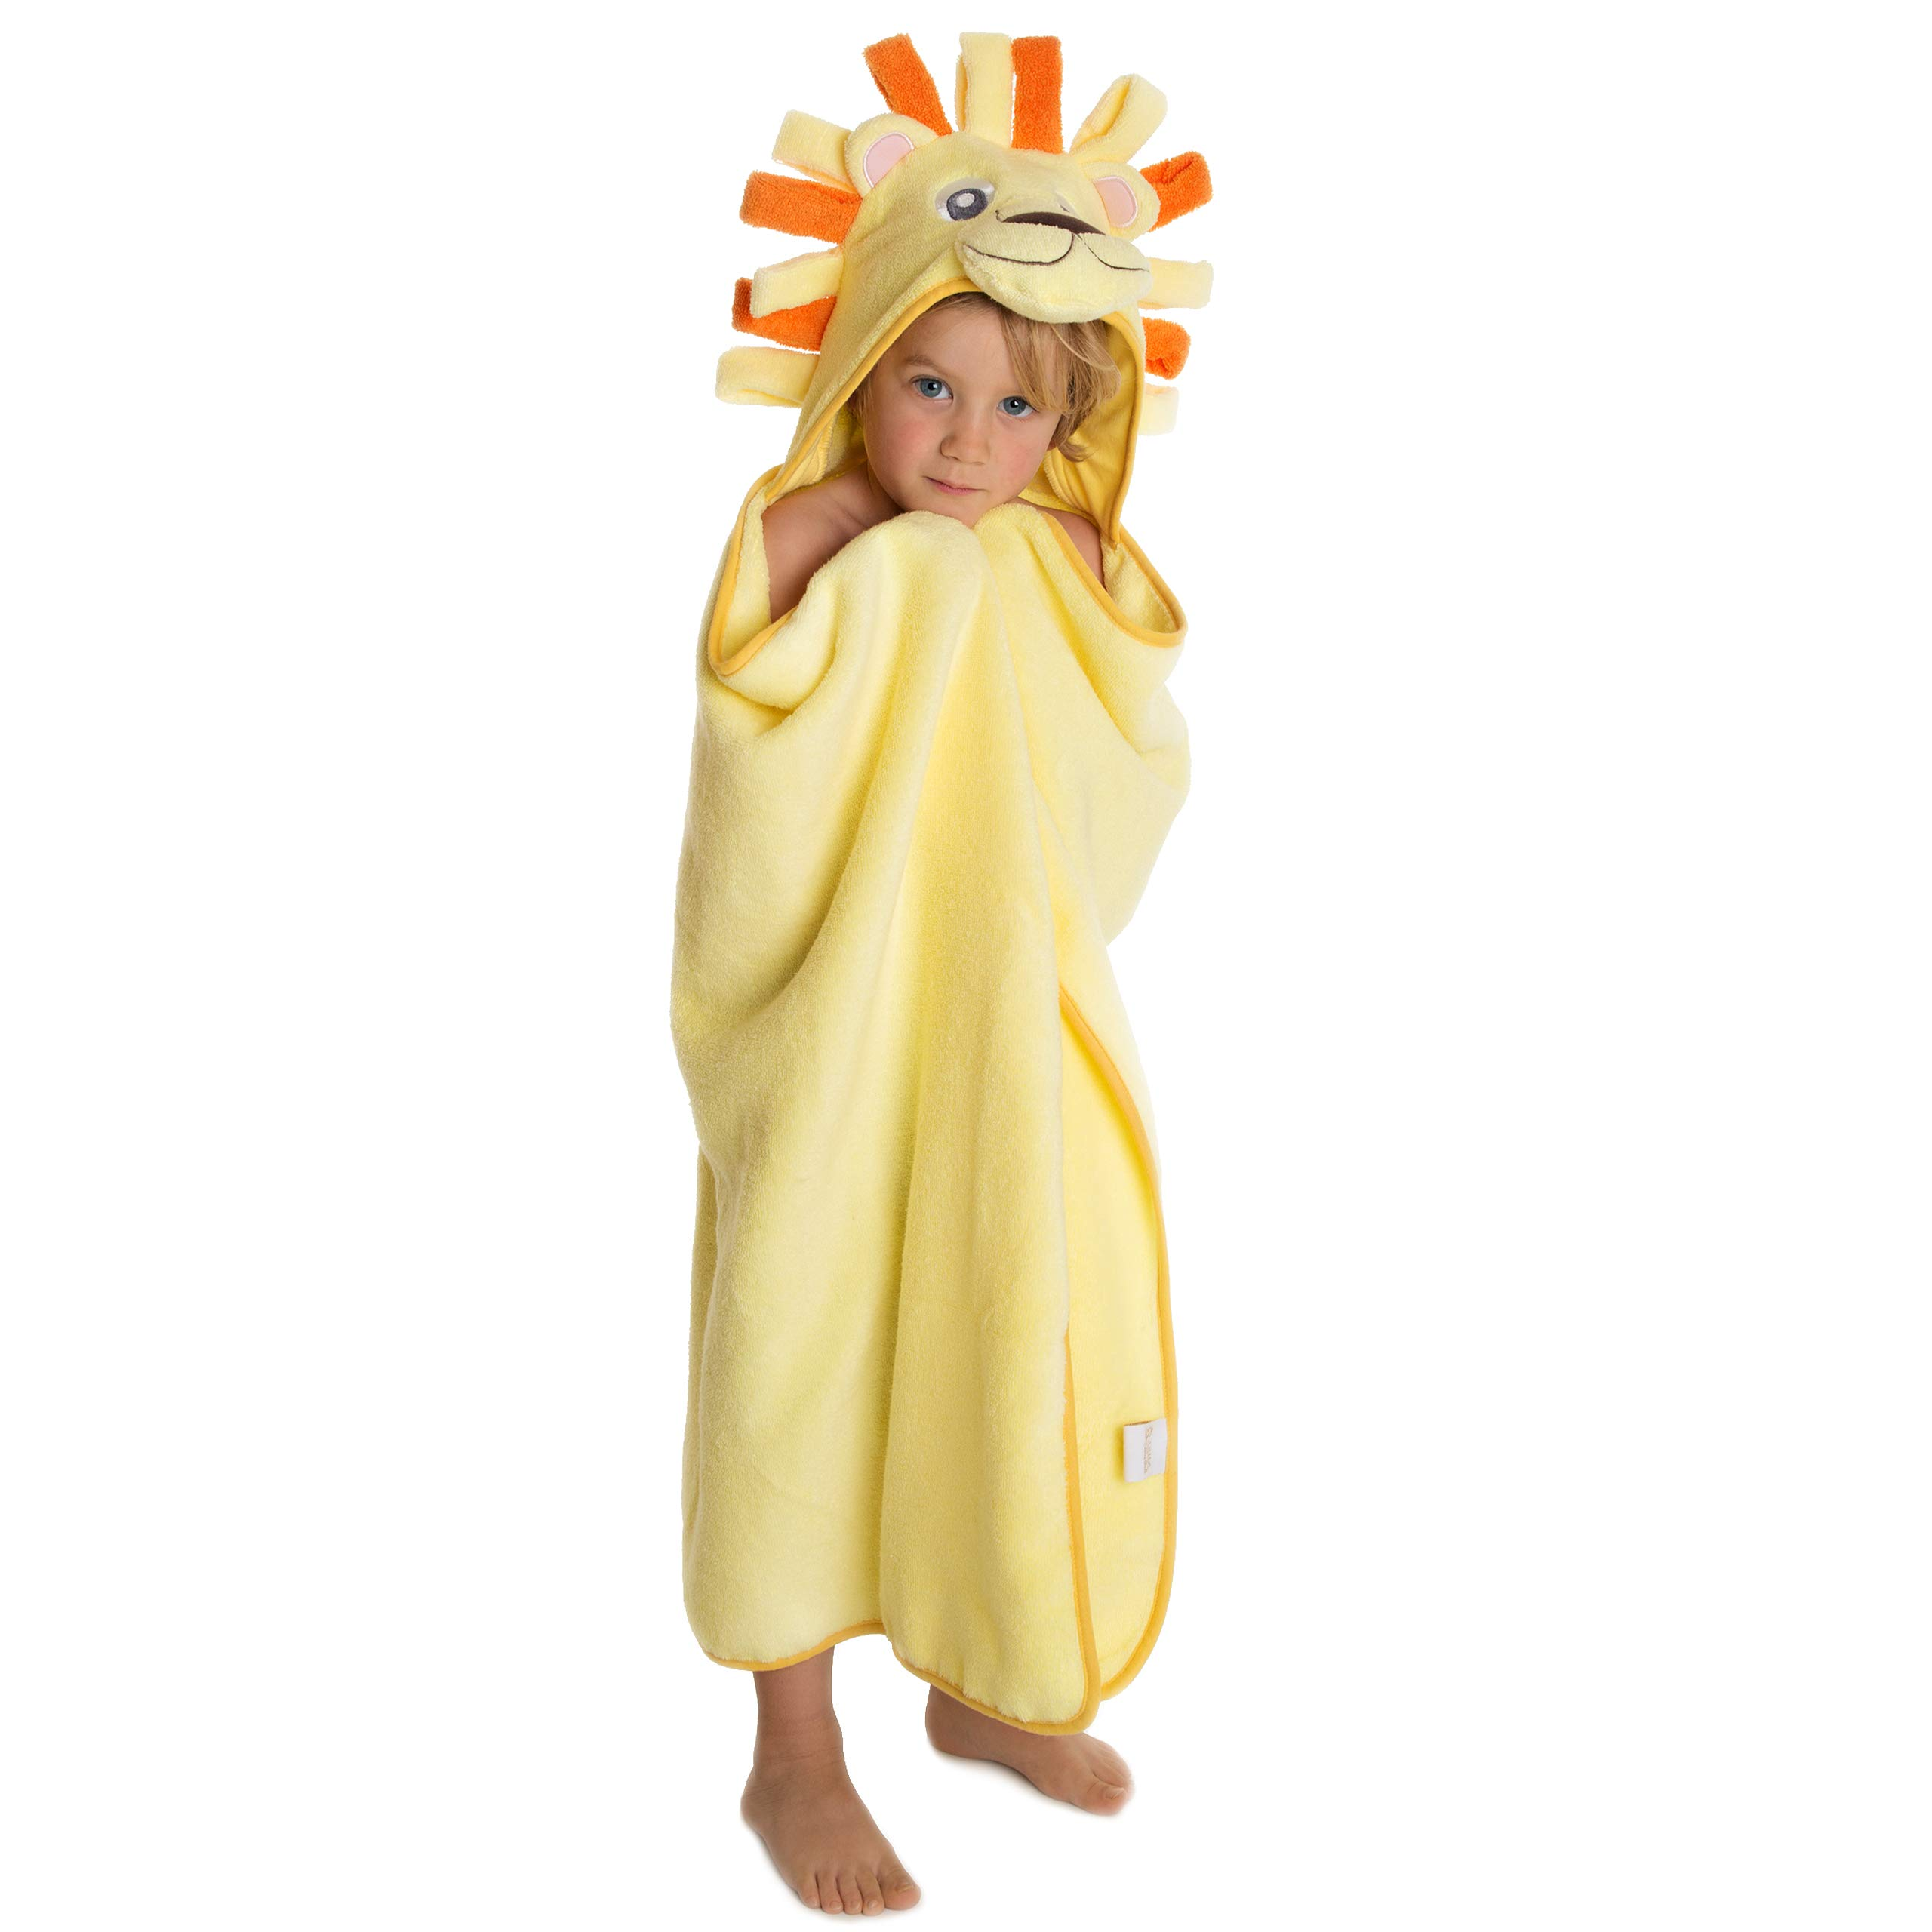 Premium Hooded Towel for Kids | Lion Design | Ultra Soft and Extra Large | 100% Cotton Bath Towel with Hood for Girls or Boys by Little Tinkers World by Little Tinkers World